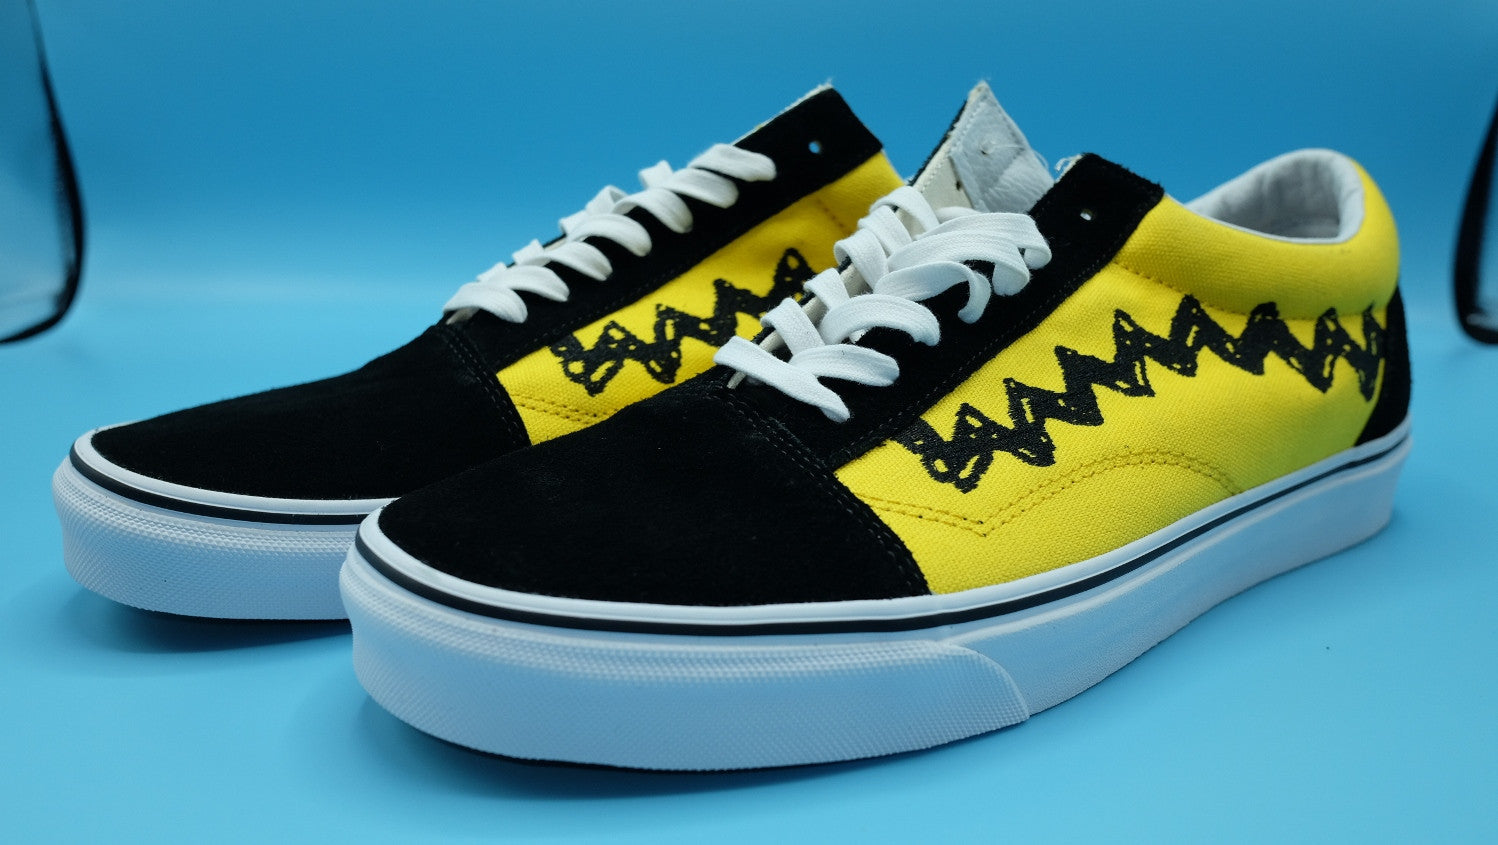 9601908d16 VANS Old Skool   Peanuts Charlie brown Yellow Black   size 12(US ...